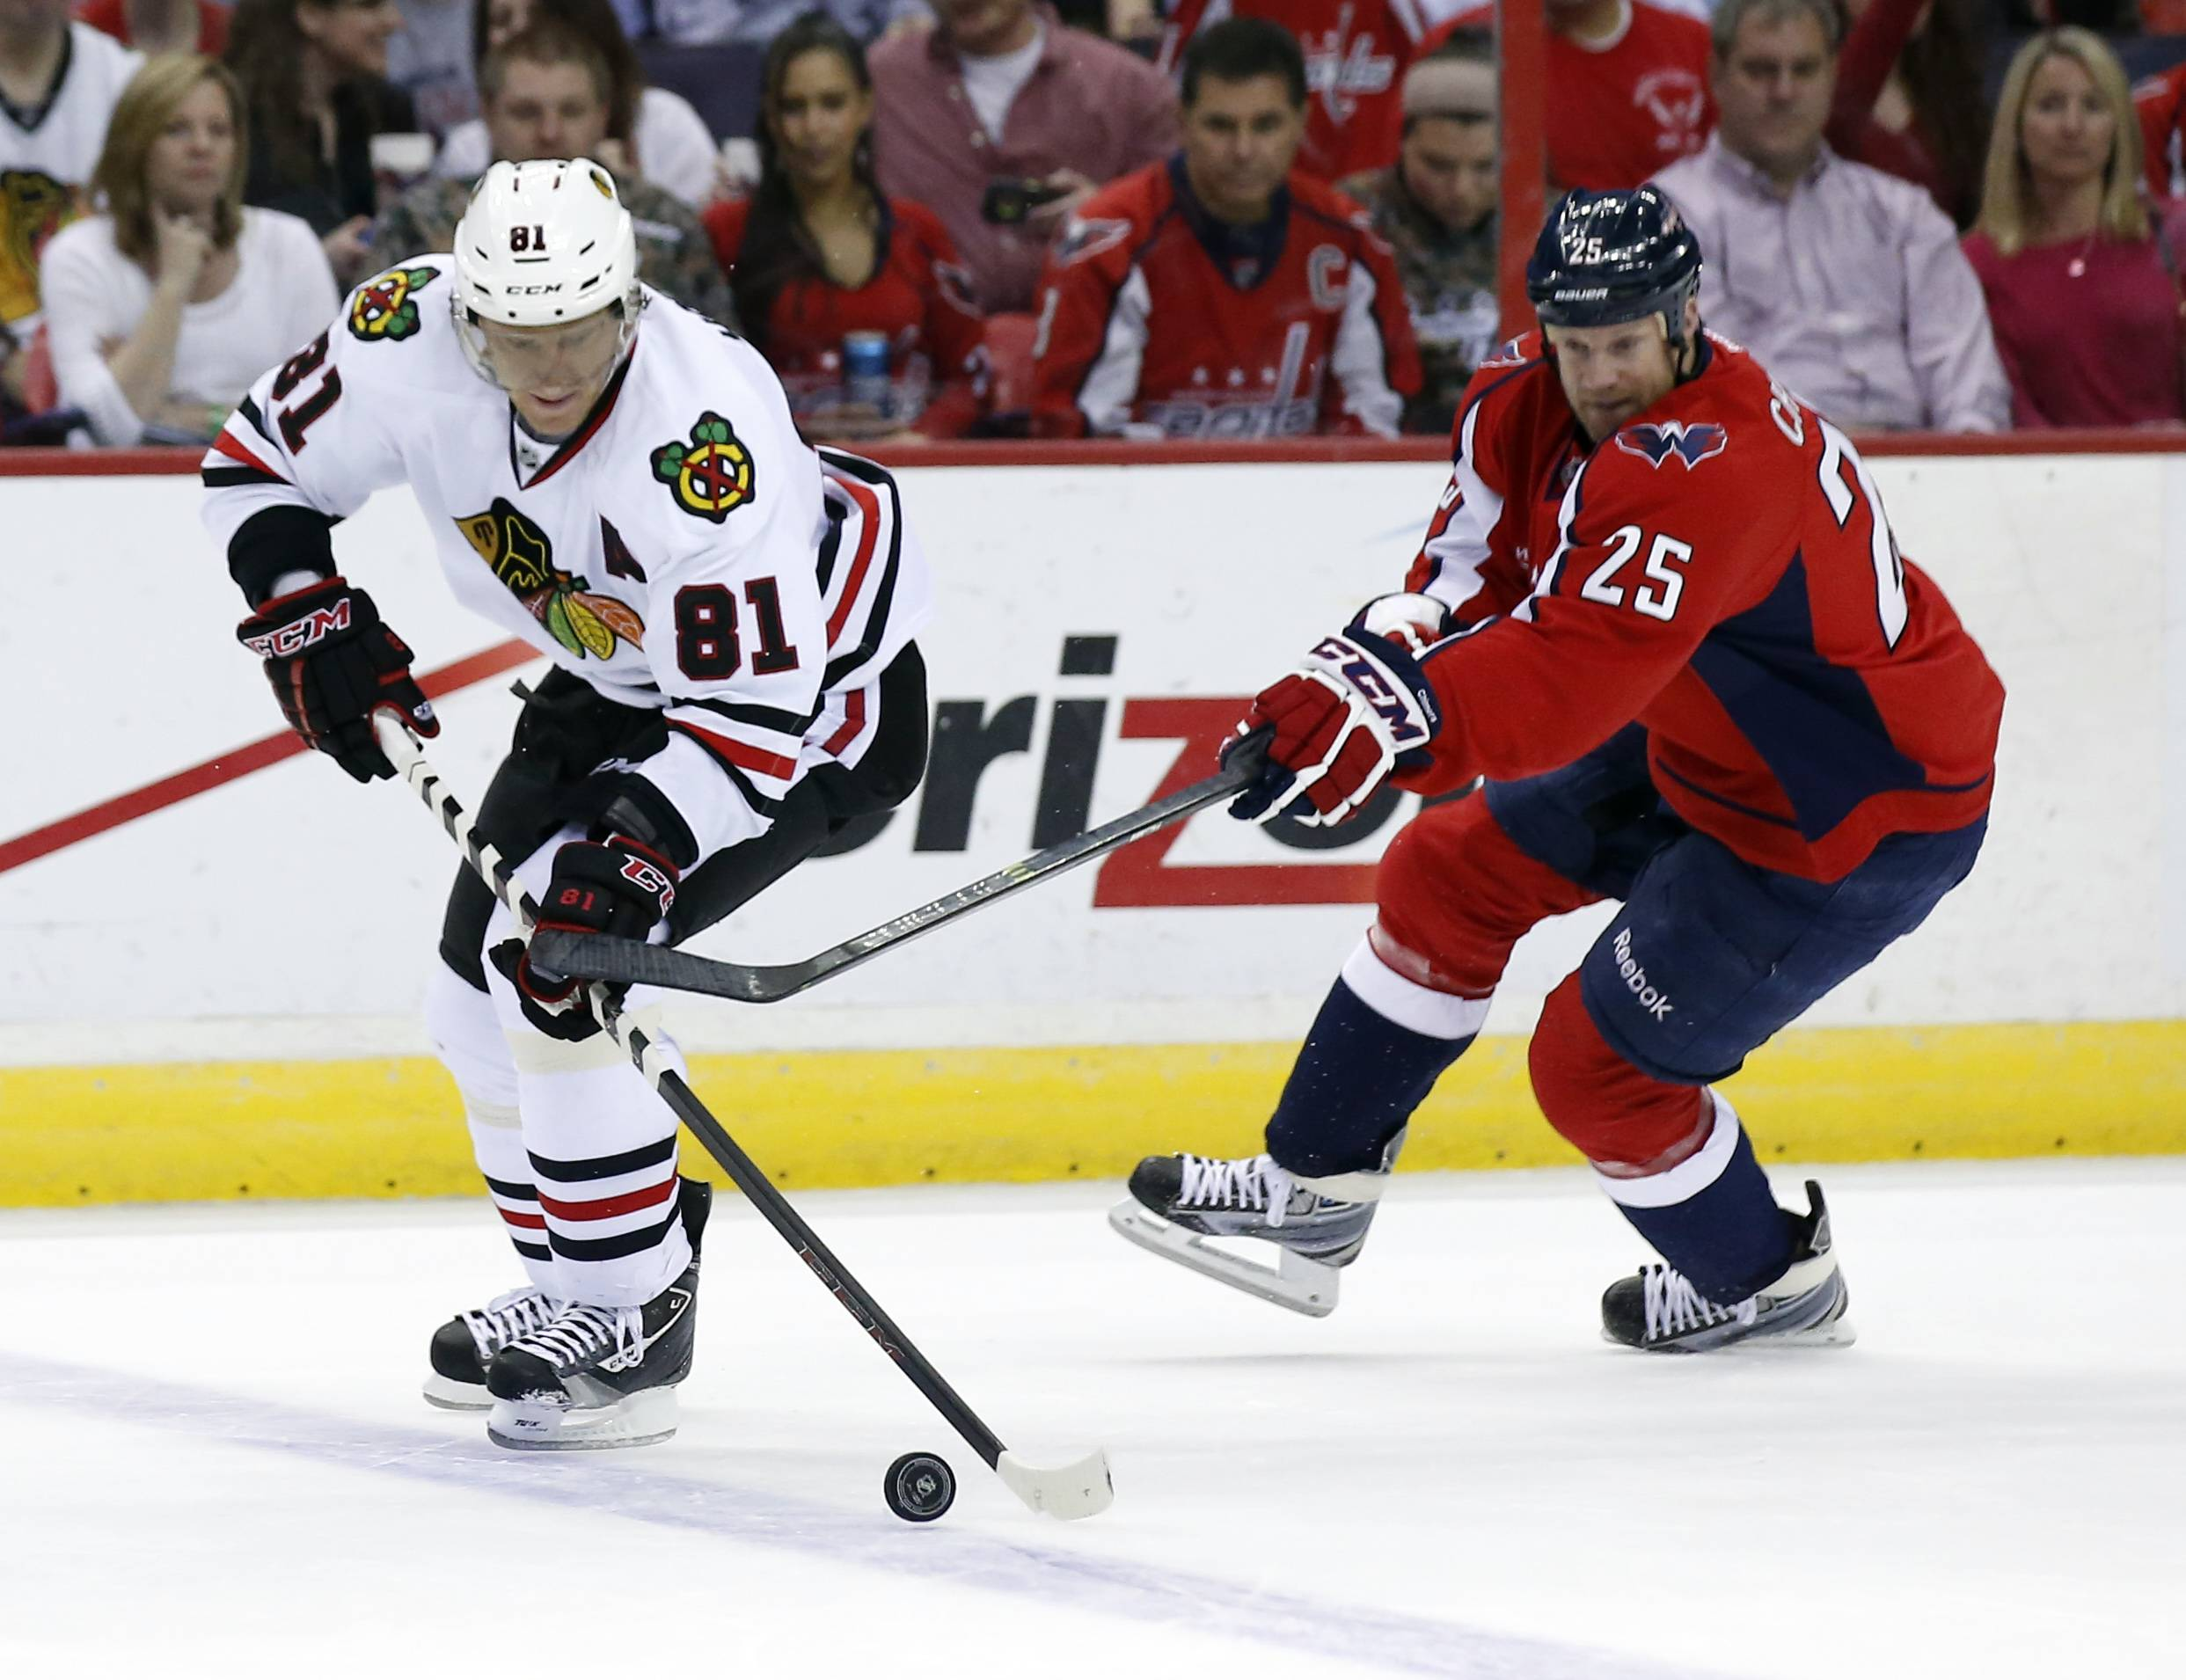 Chicago Blackhawks right wing Marian Hossa (81), from the Czech Republic, skates with the puck as he defended by Washington Capitals left wing Jason Chimera (25) in the first period of an NHL hockey game, Friday, April 11, 2014, in Washington. (AP Photo/Alex Brandon)